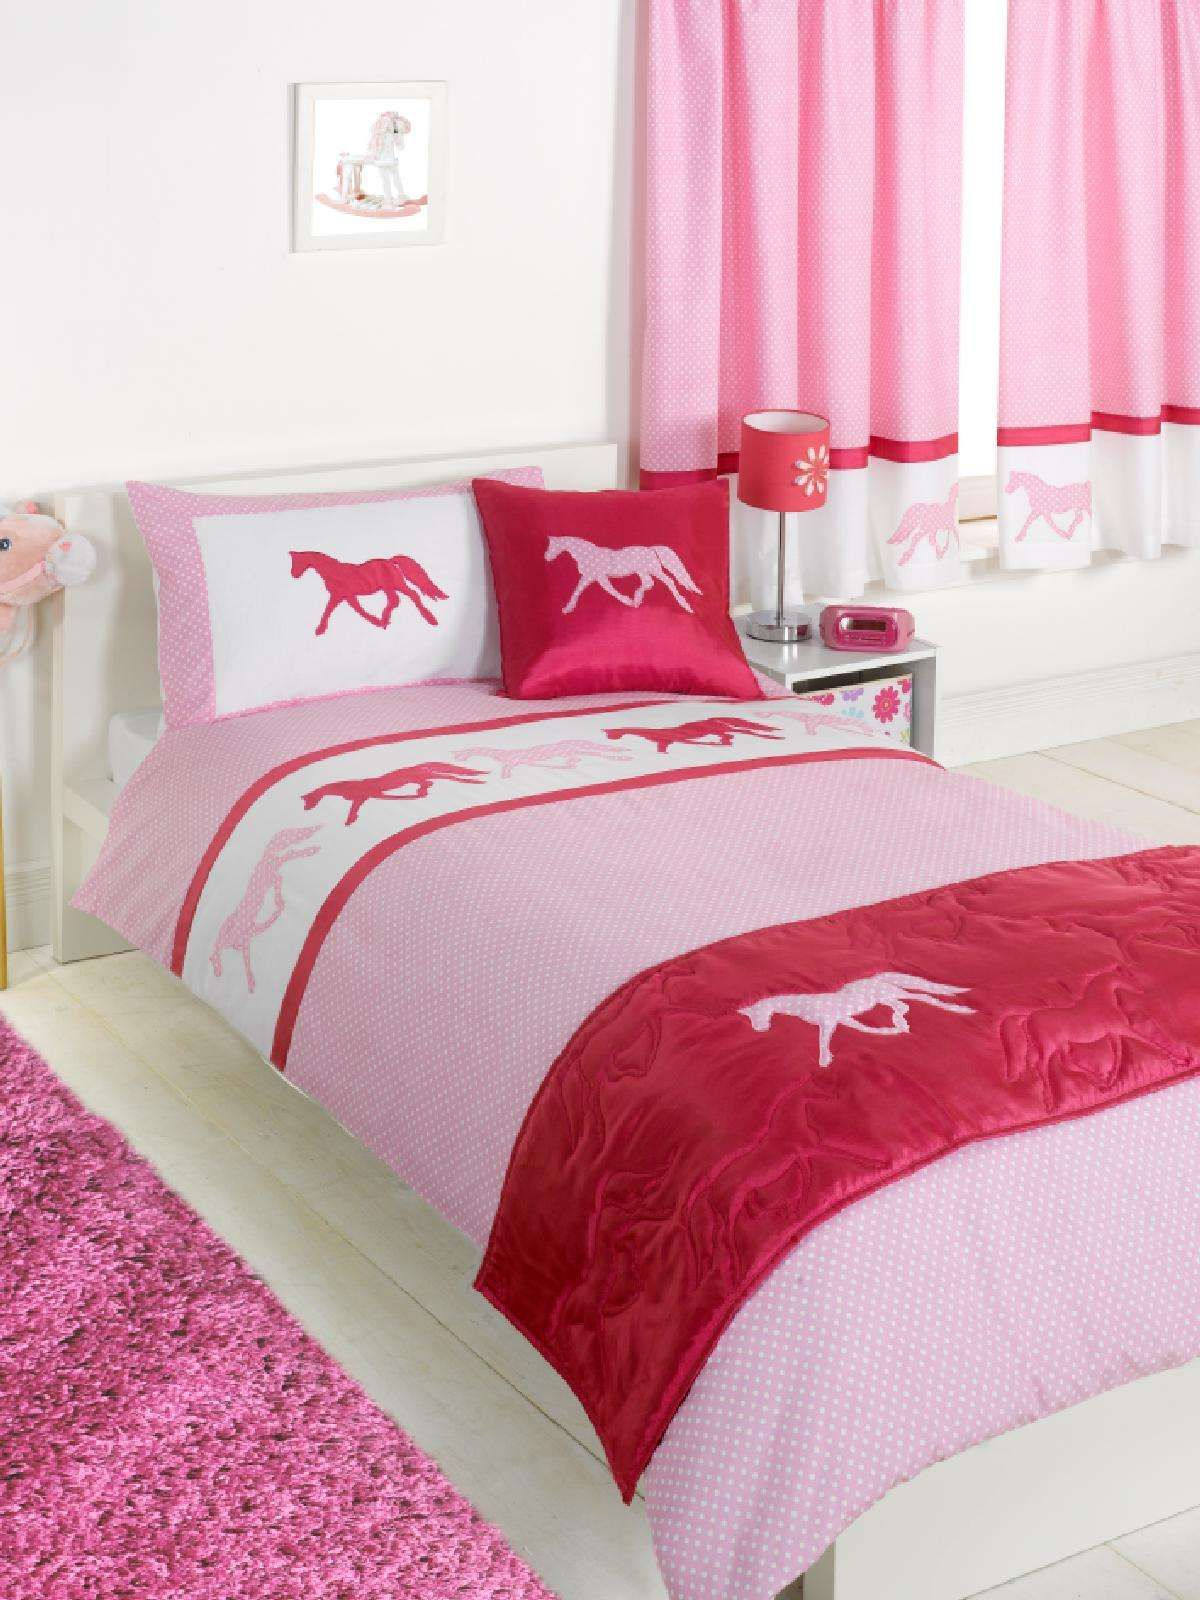 horse bed linen uk Google Search Bed linens luxury